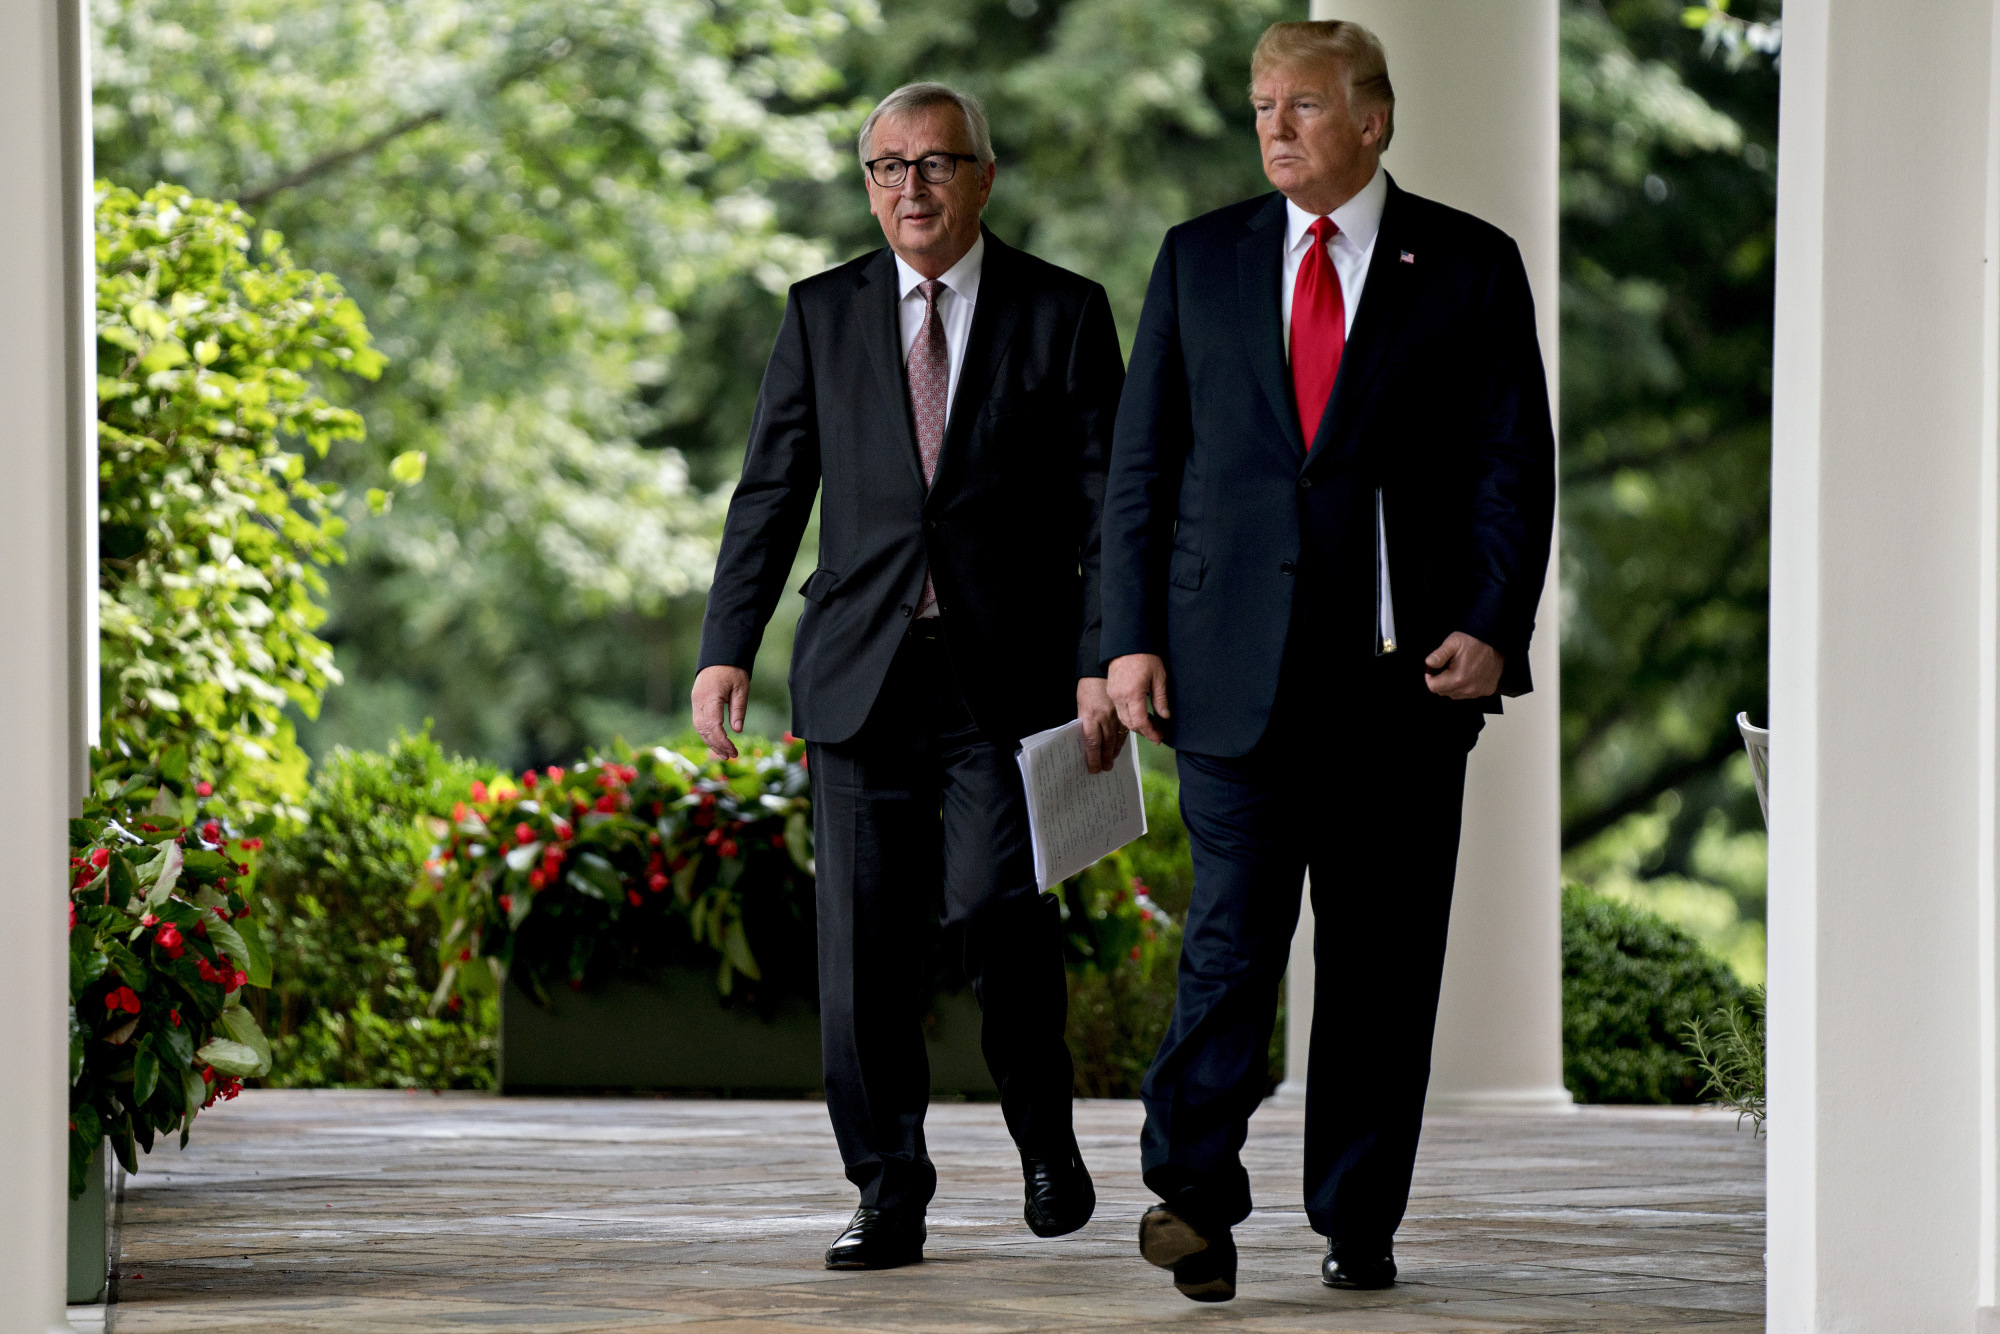 Donald Trump, right, and Jean-Claude Juncker, in Washington, D.C., on July 25, 2018.